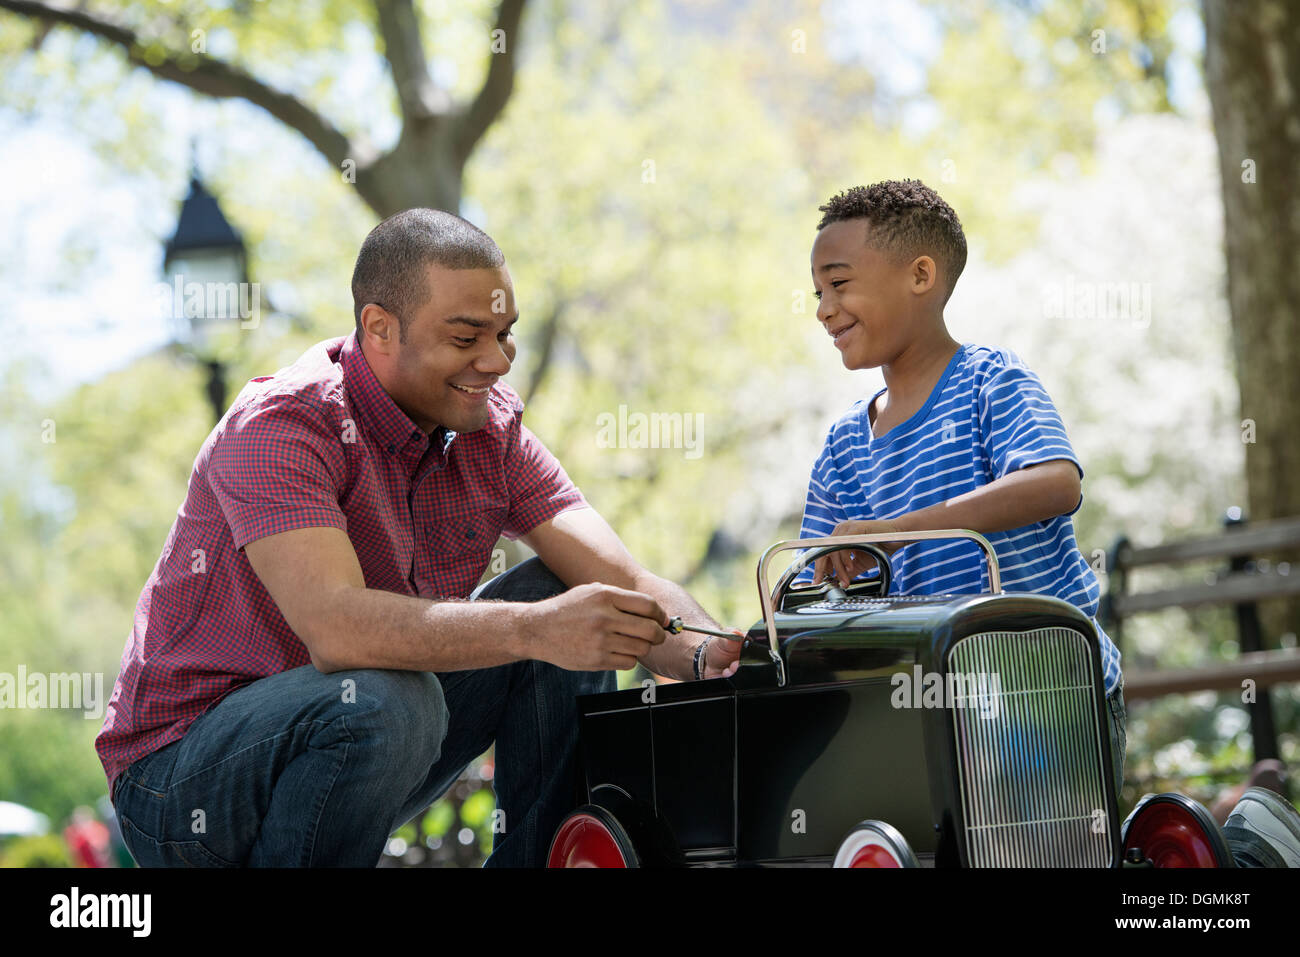 A boy riding an old fashioned toy peddle car. - Stock Image